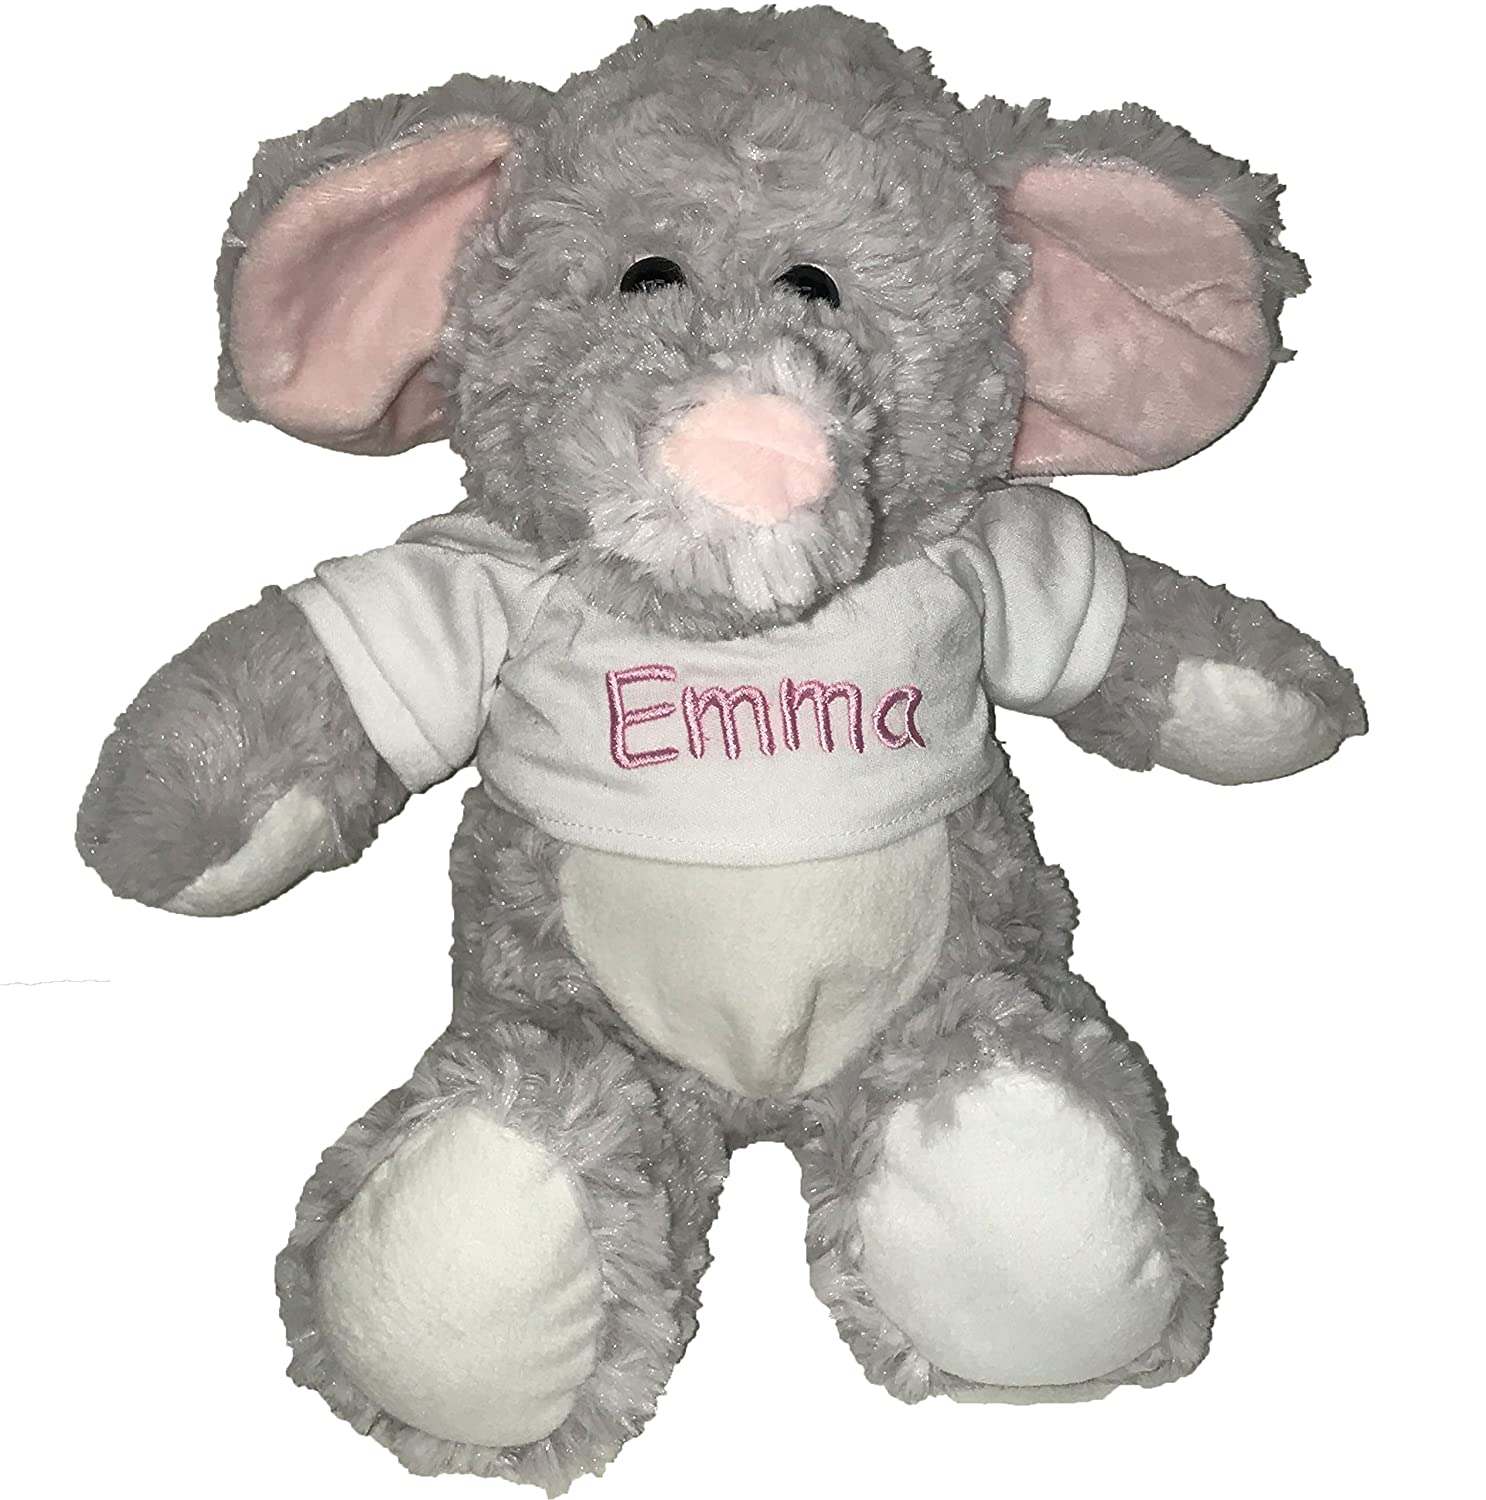 Personalized Elephant With T Shirt Sitting Plush Stuffed Animal Toy Baby Pink